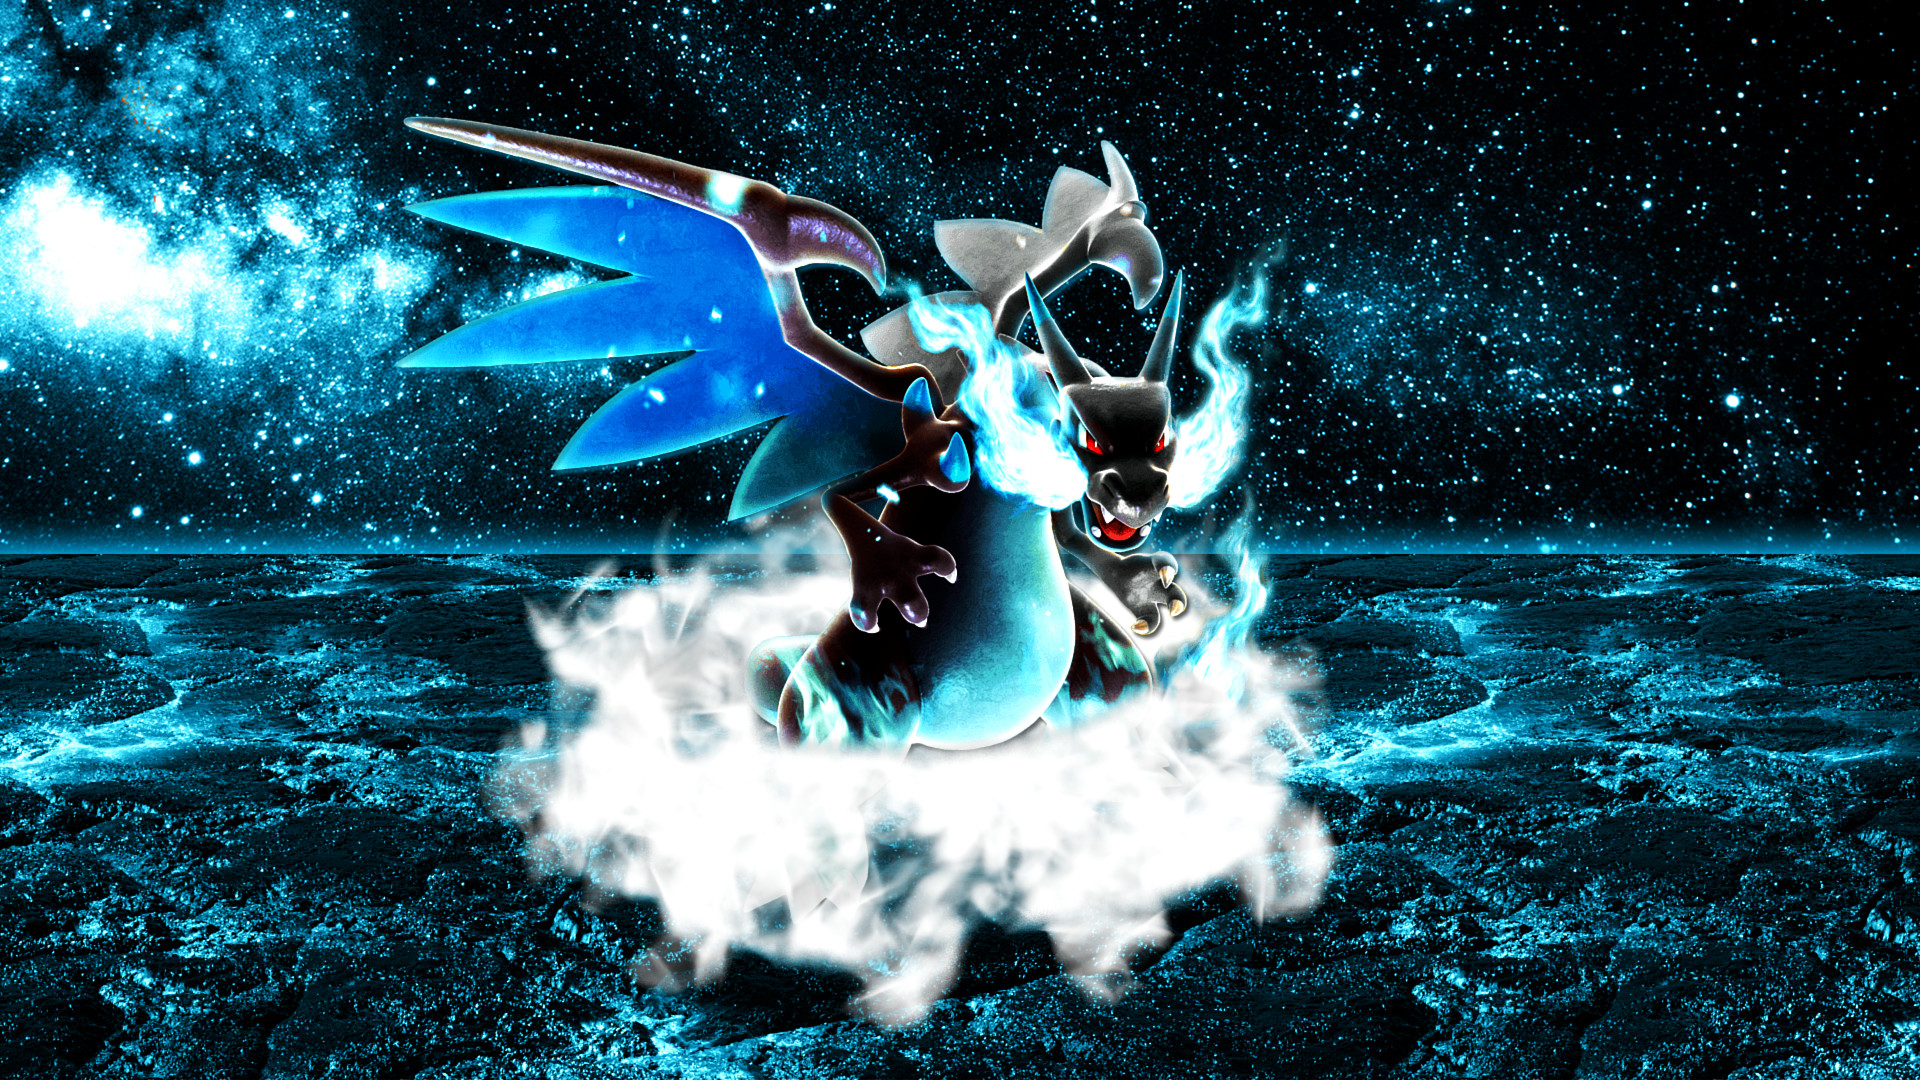 1920x1080 Mega Charizard X Wallpaper 2 by Glench